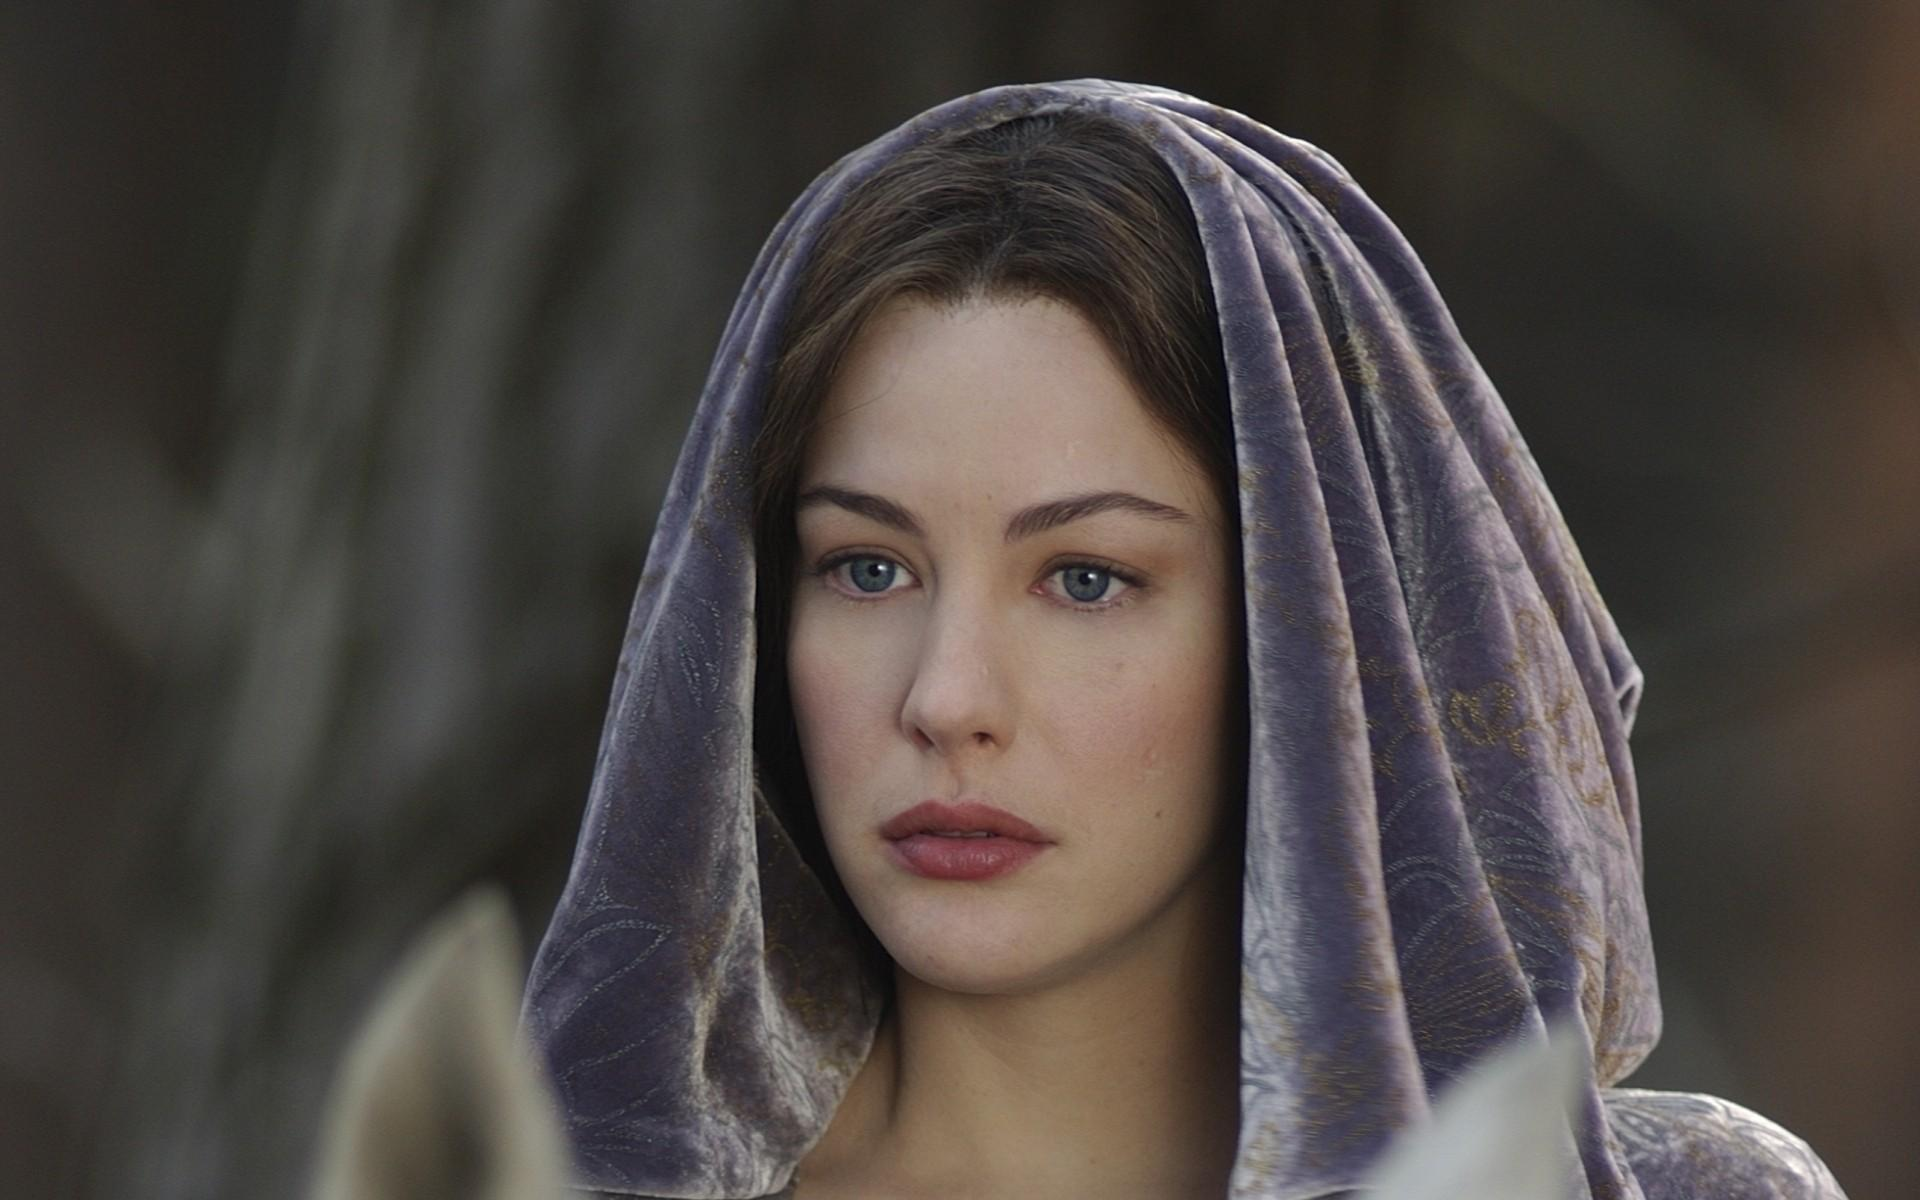 brunettes, women, movies, Liv Tyler, The Lord of the Rings, Arwen